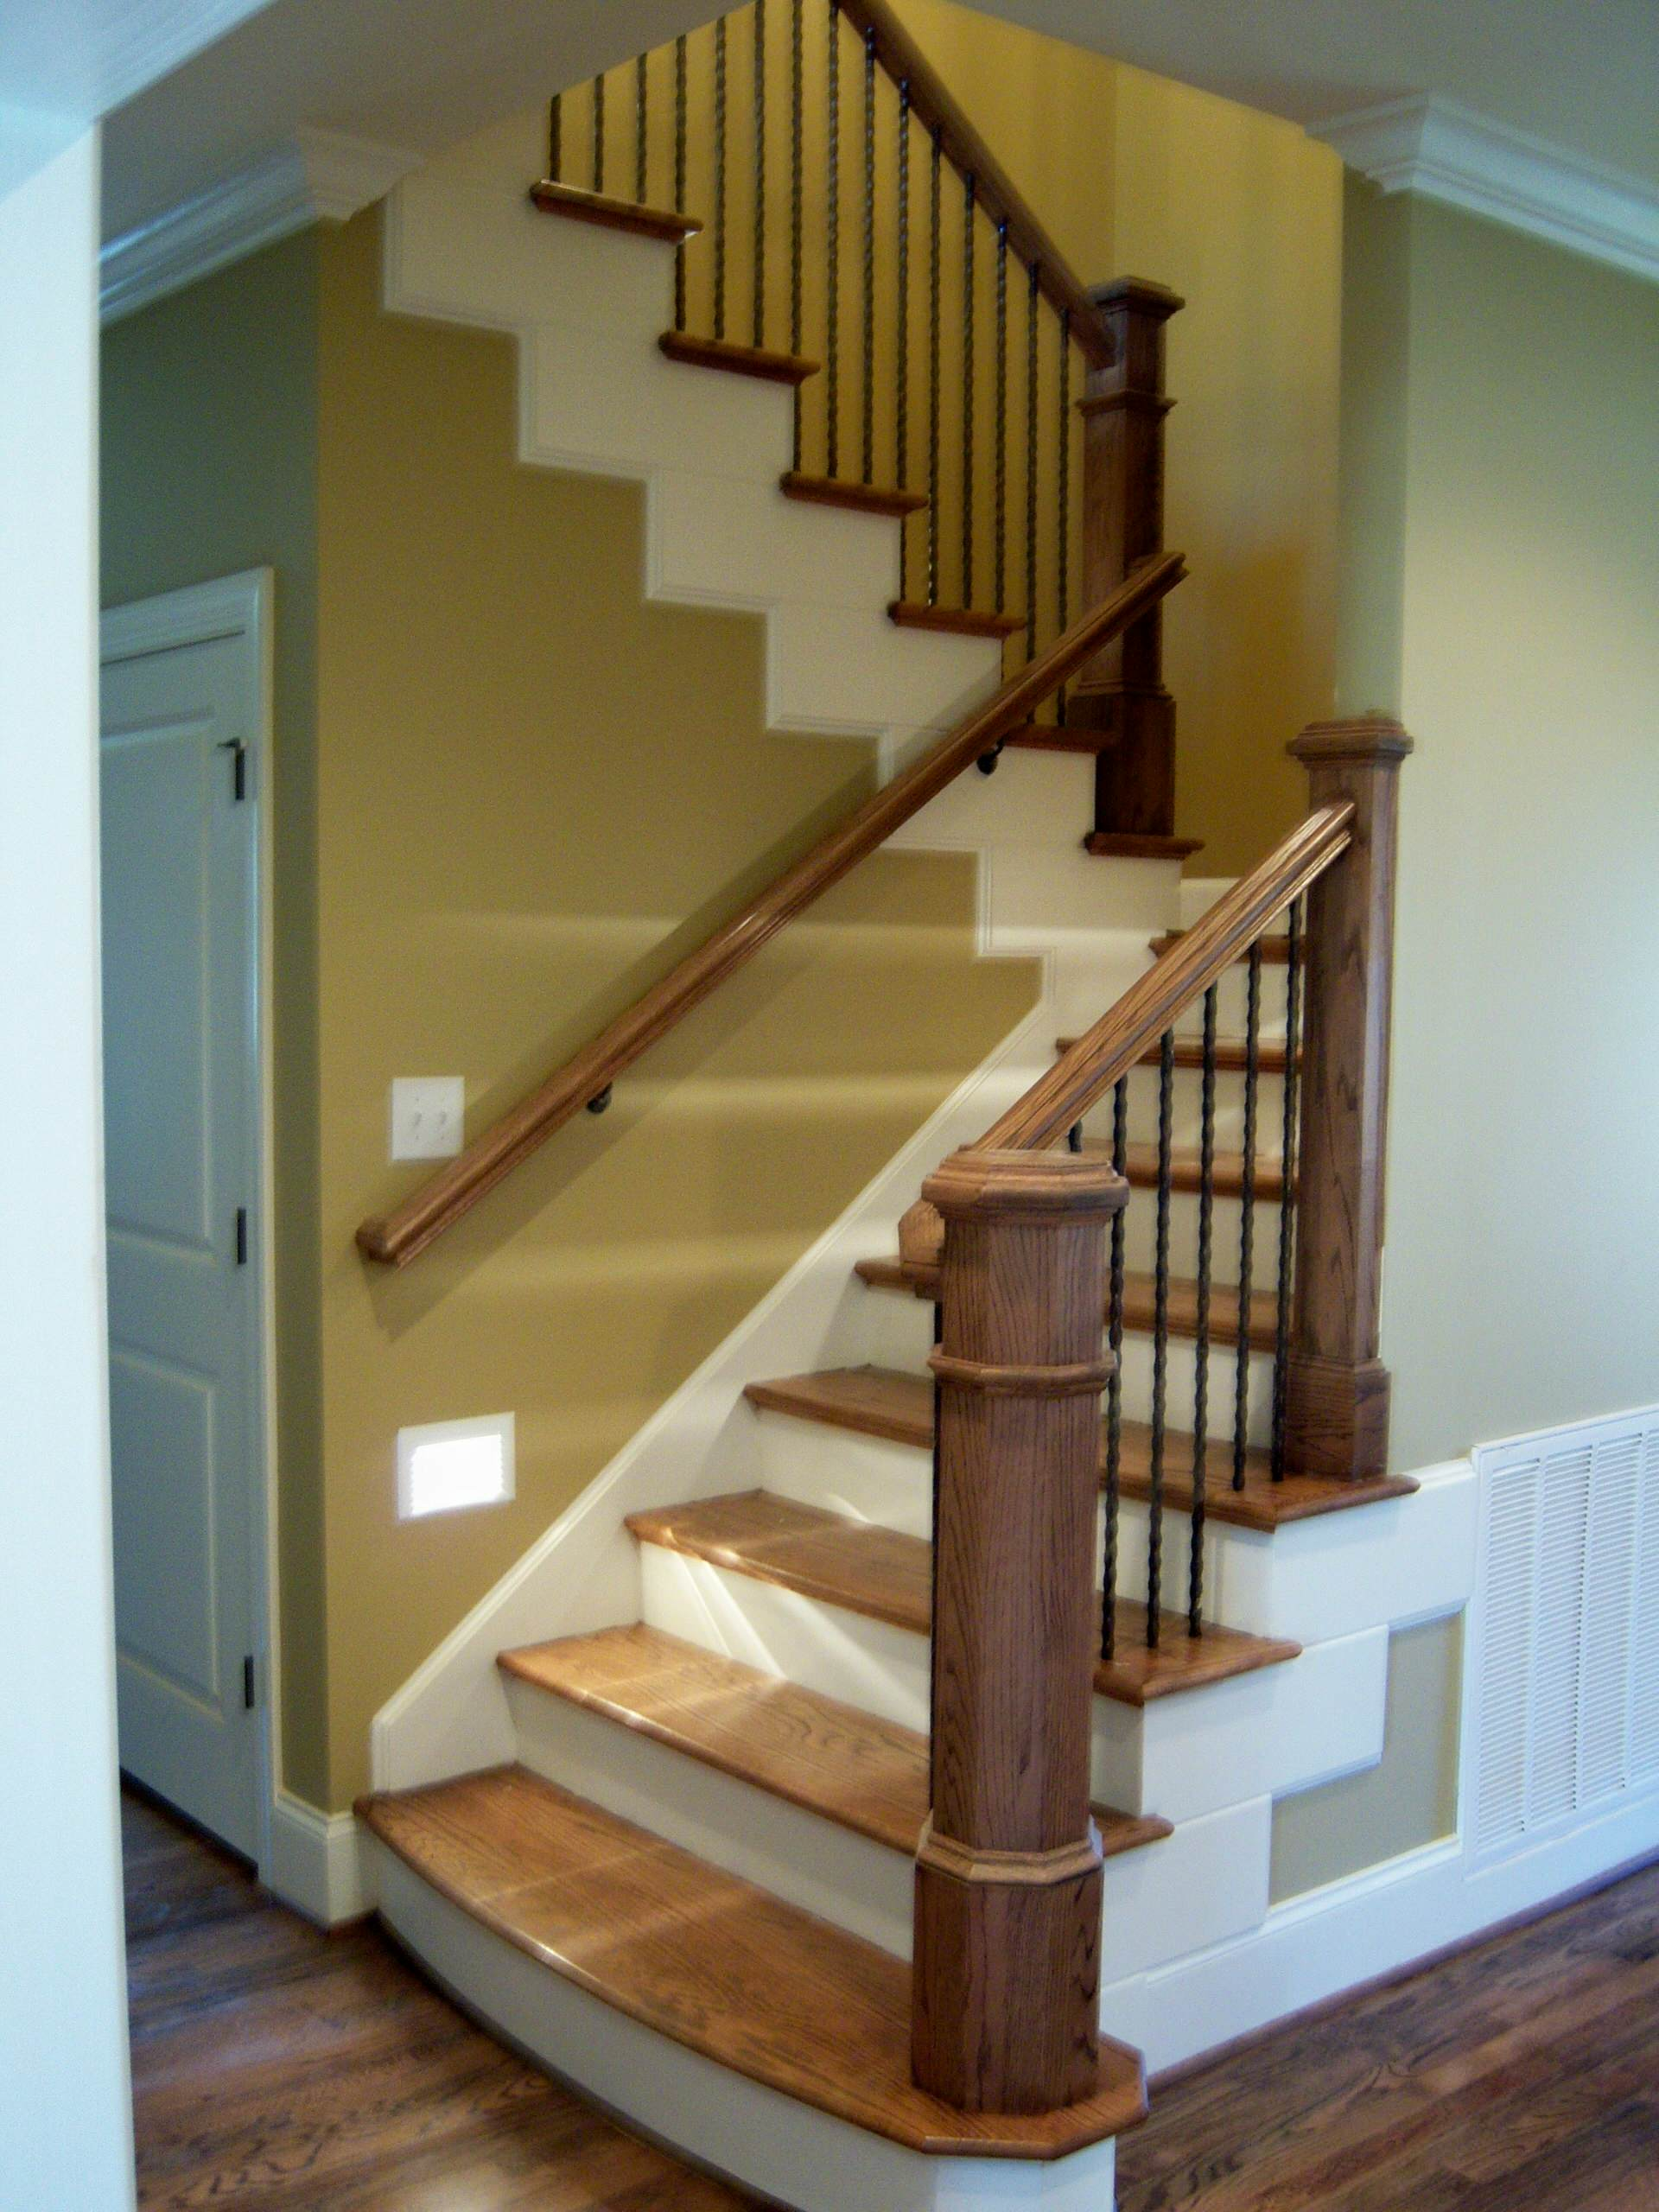 8x8 Stairs